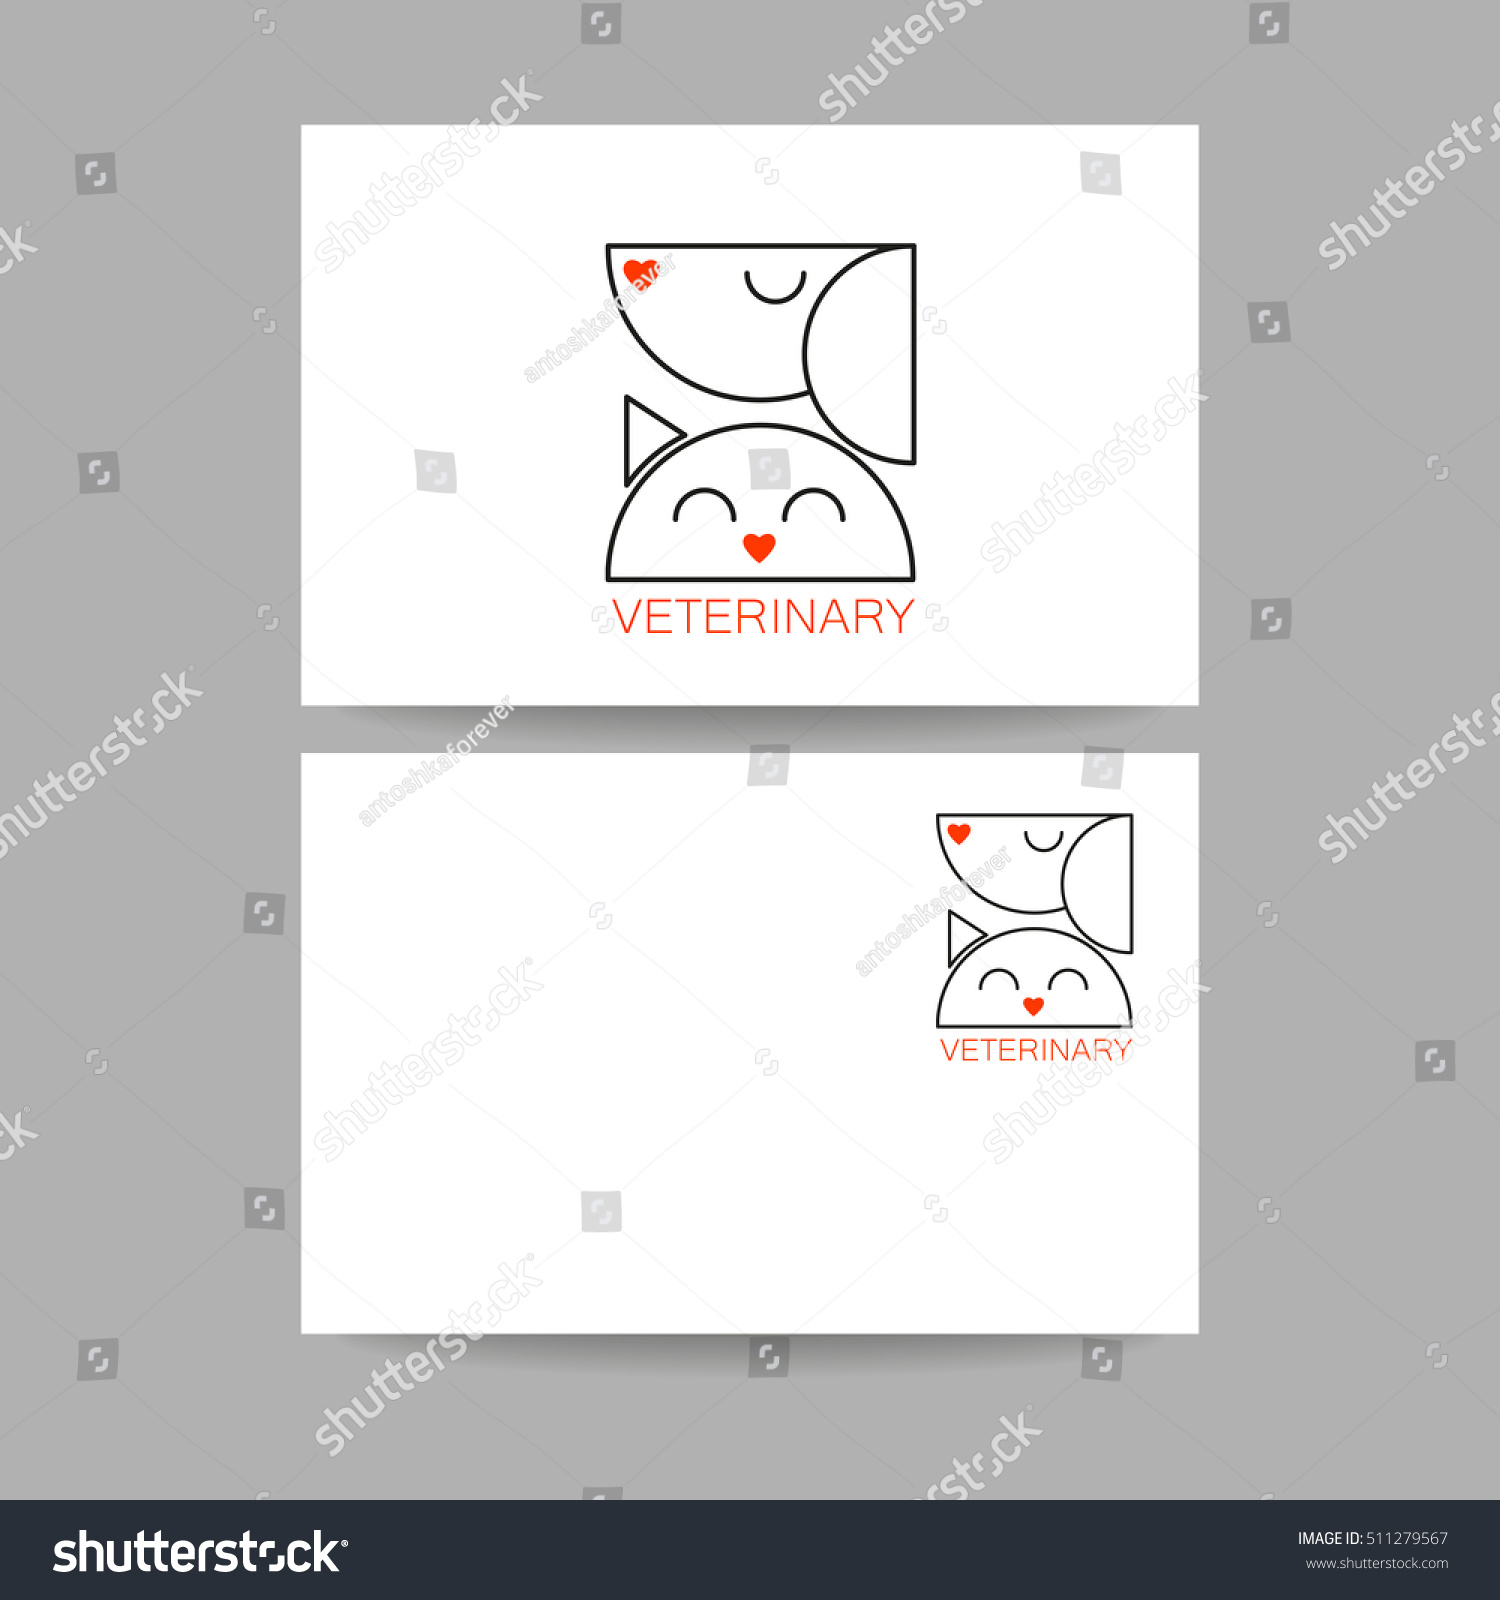 Veterinary Clinic Business Card Template Idea Stock Vector HD ...